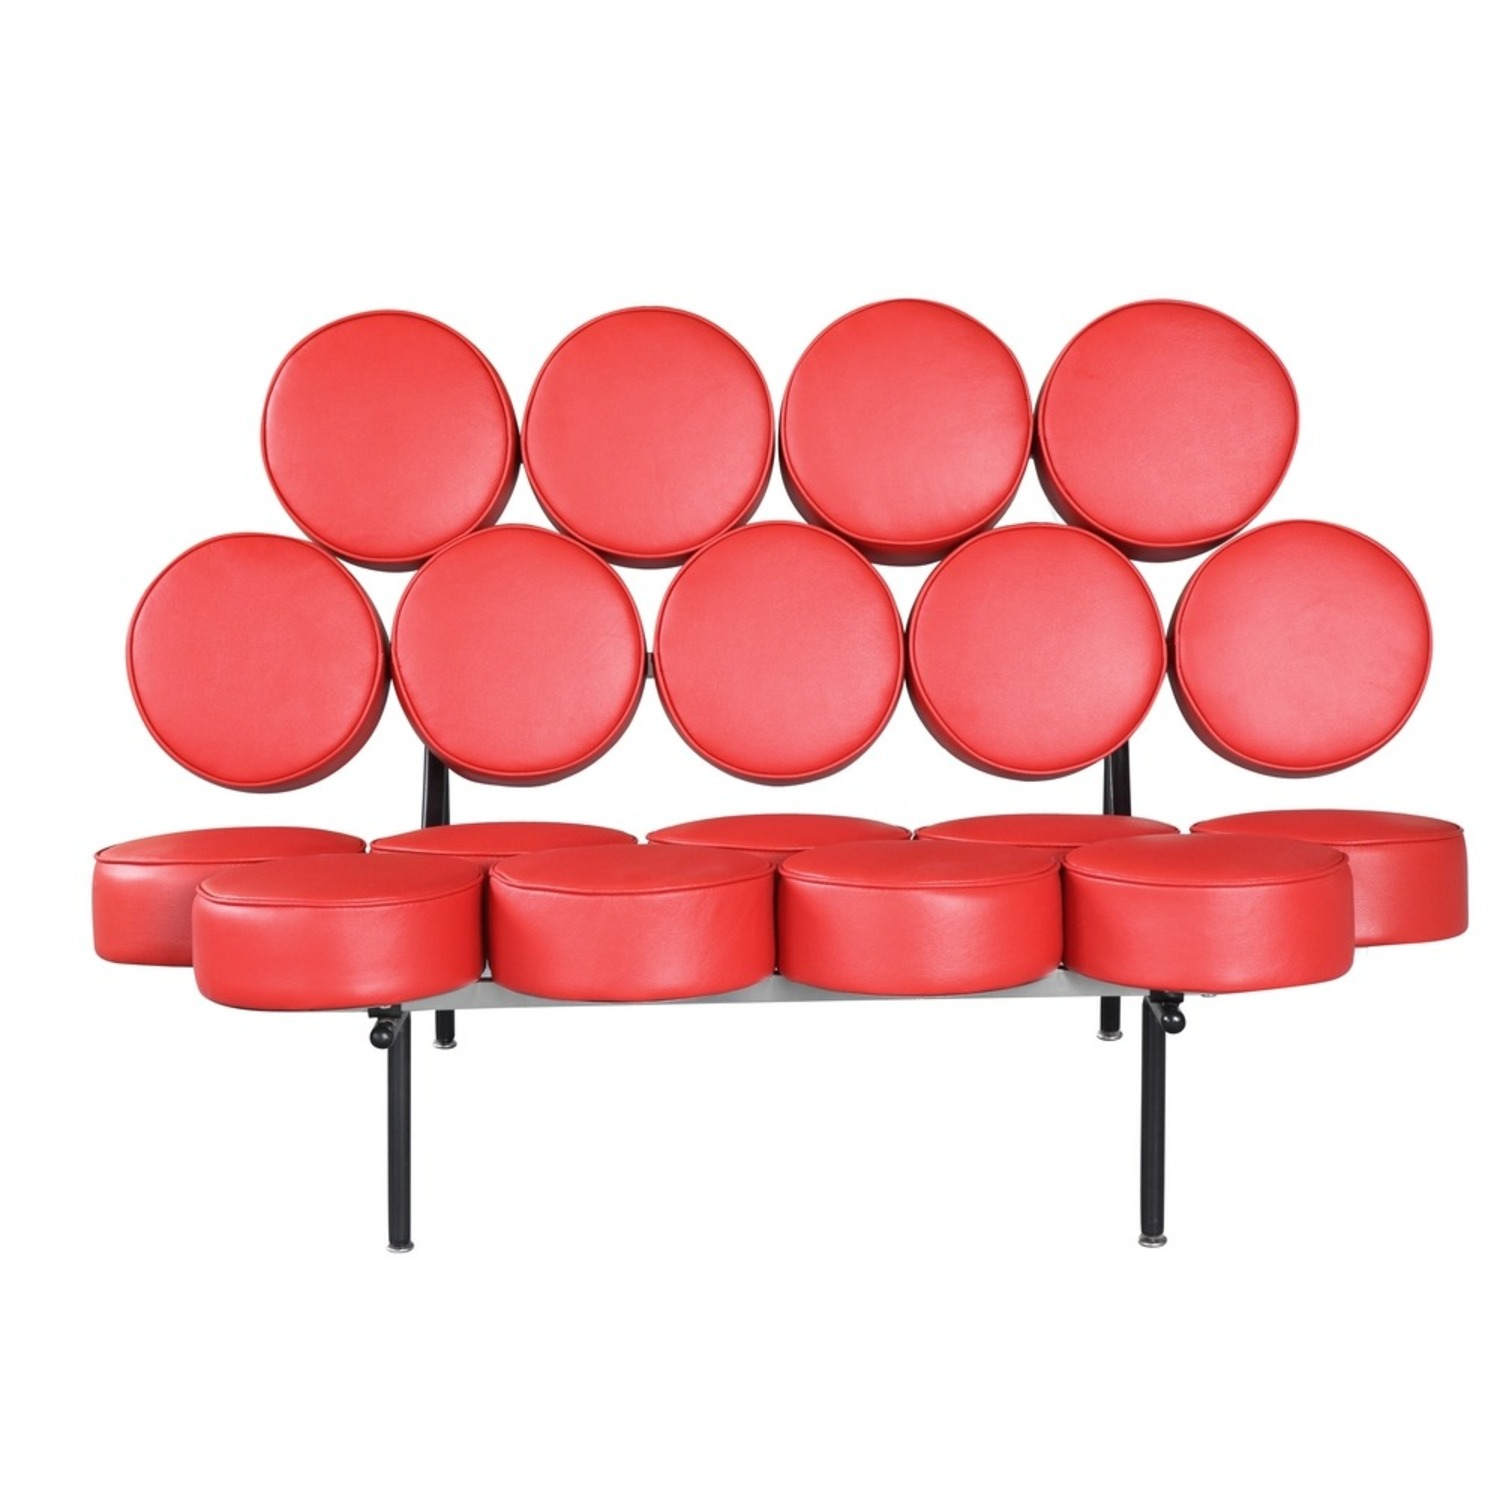 Sofa In Red Leather W/ Circle Seat & Back Design - image-5